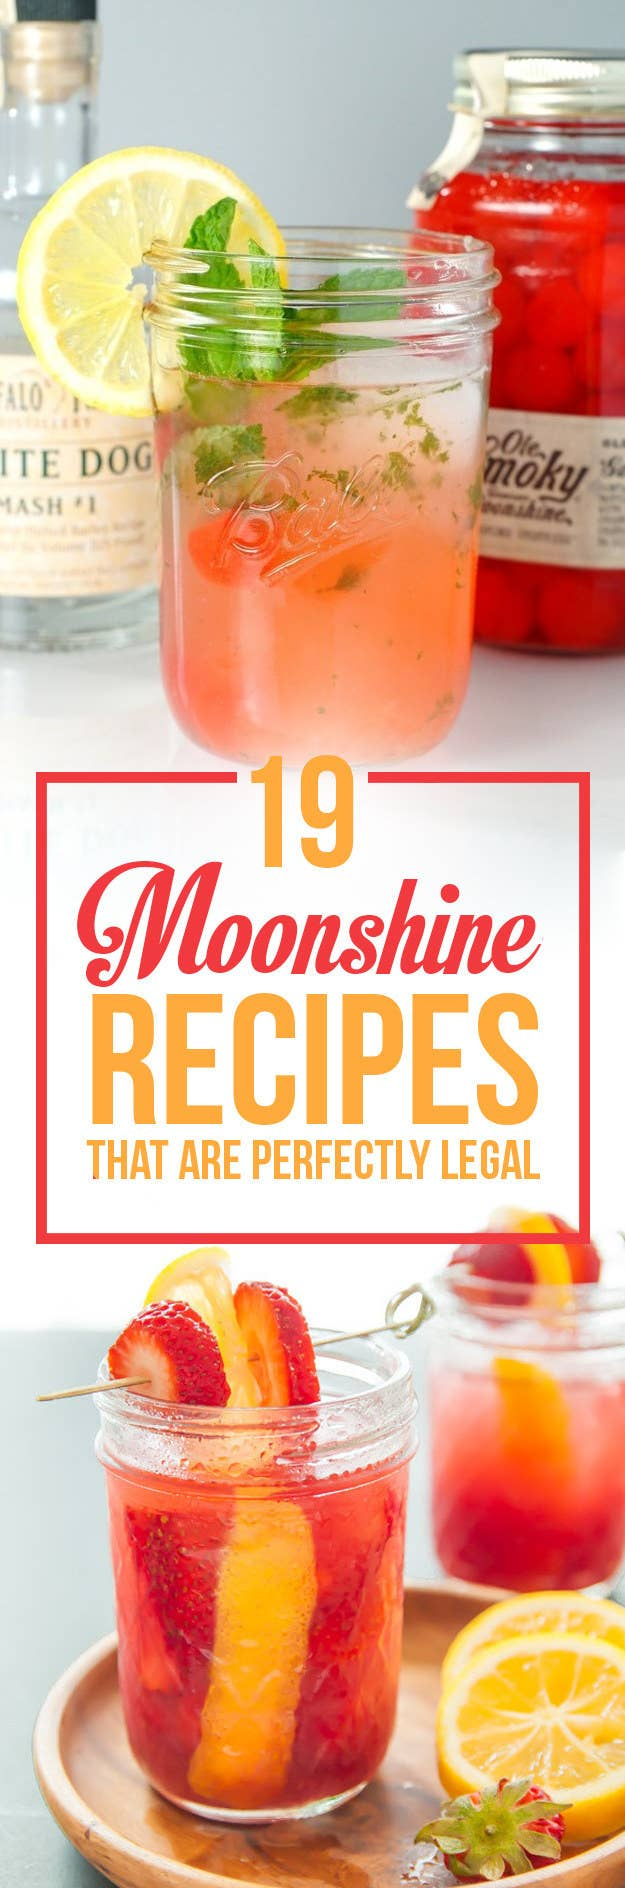 Homemade jolly rancher moonshine homemade ftempo for Country living magazine recipes